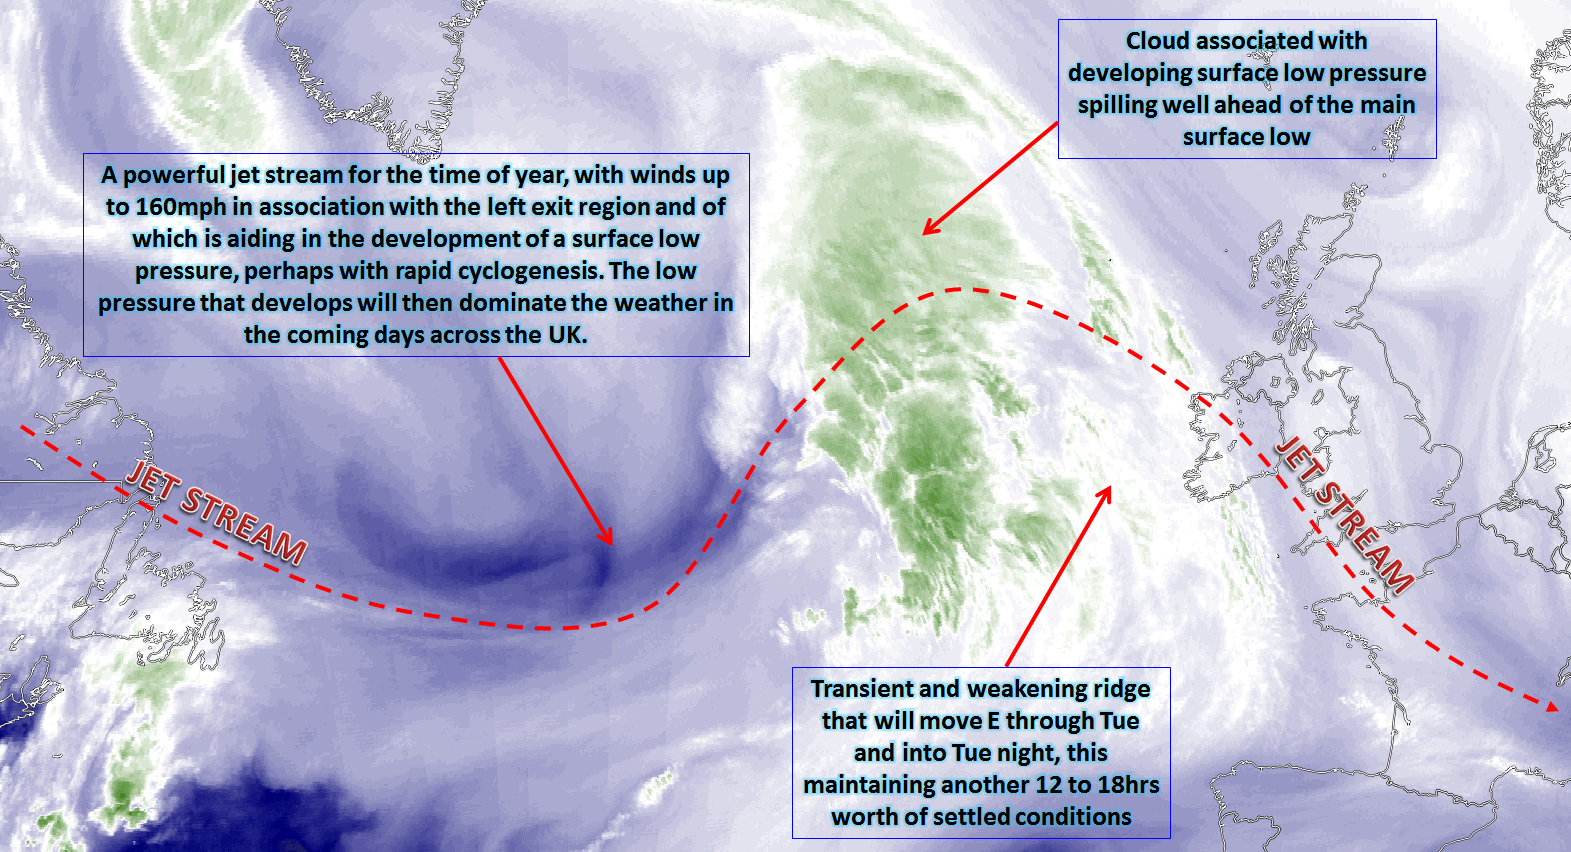 Synoptic Guidance - Cyclonic Weather Set To Dominate